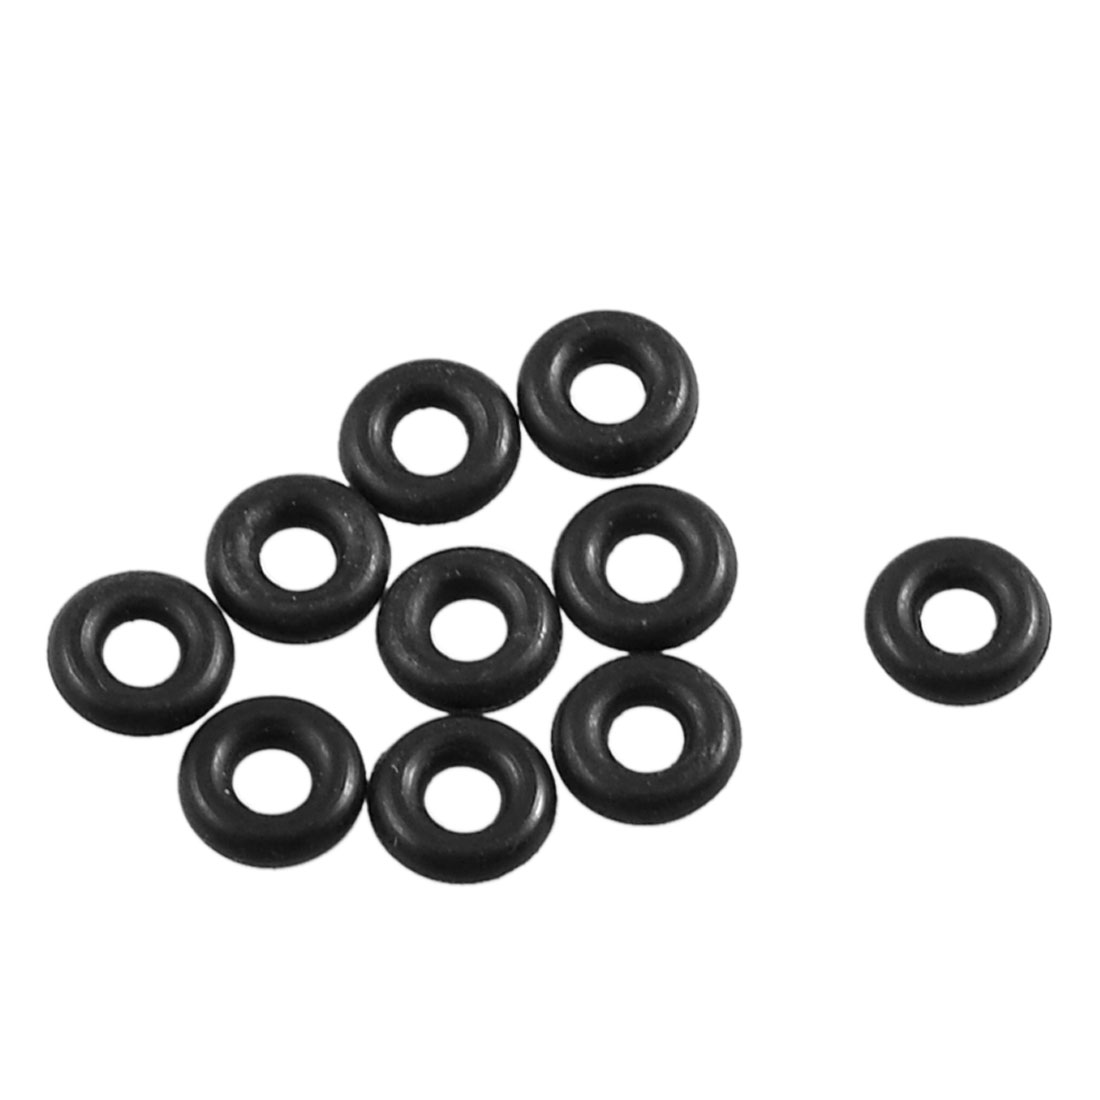 uxcell 20pcs Black 14mm x 11mm x 1.5mm Rubber O Ring Oil Seal Sealing Gaskets